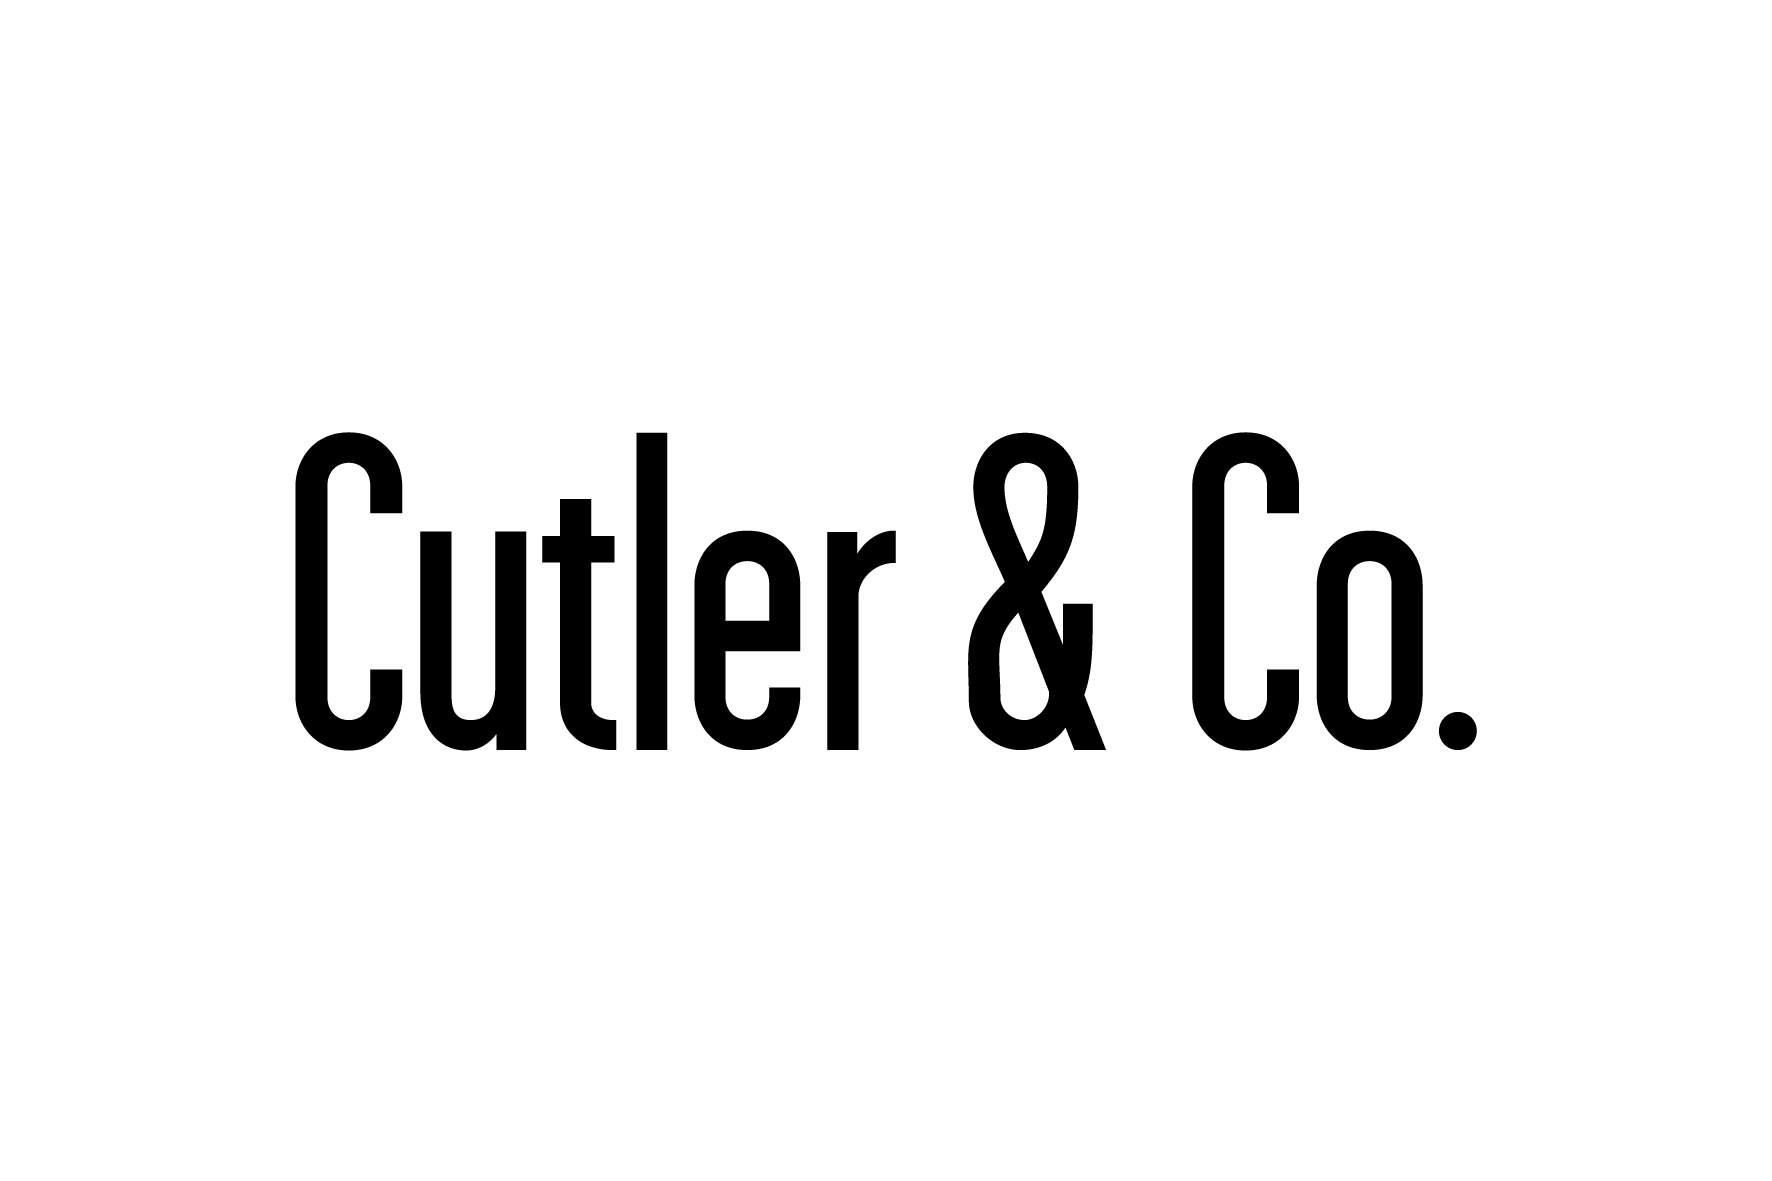 Cutler & Co